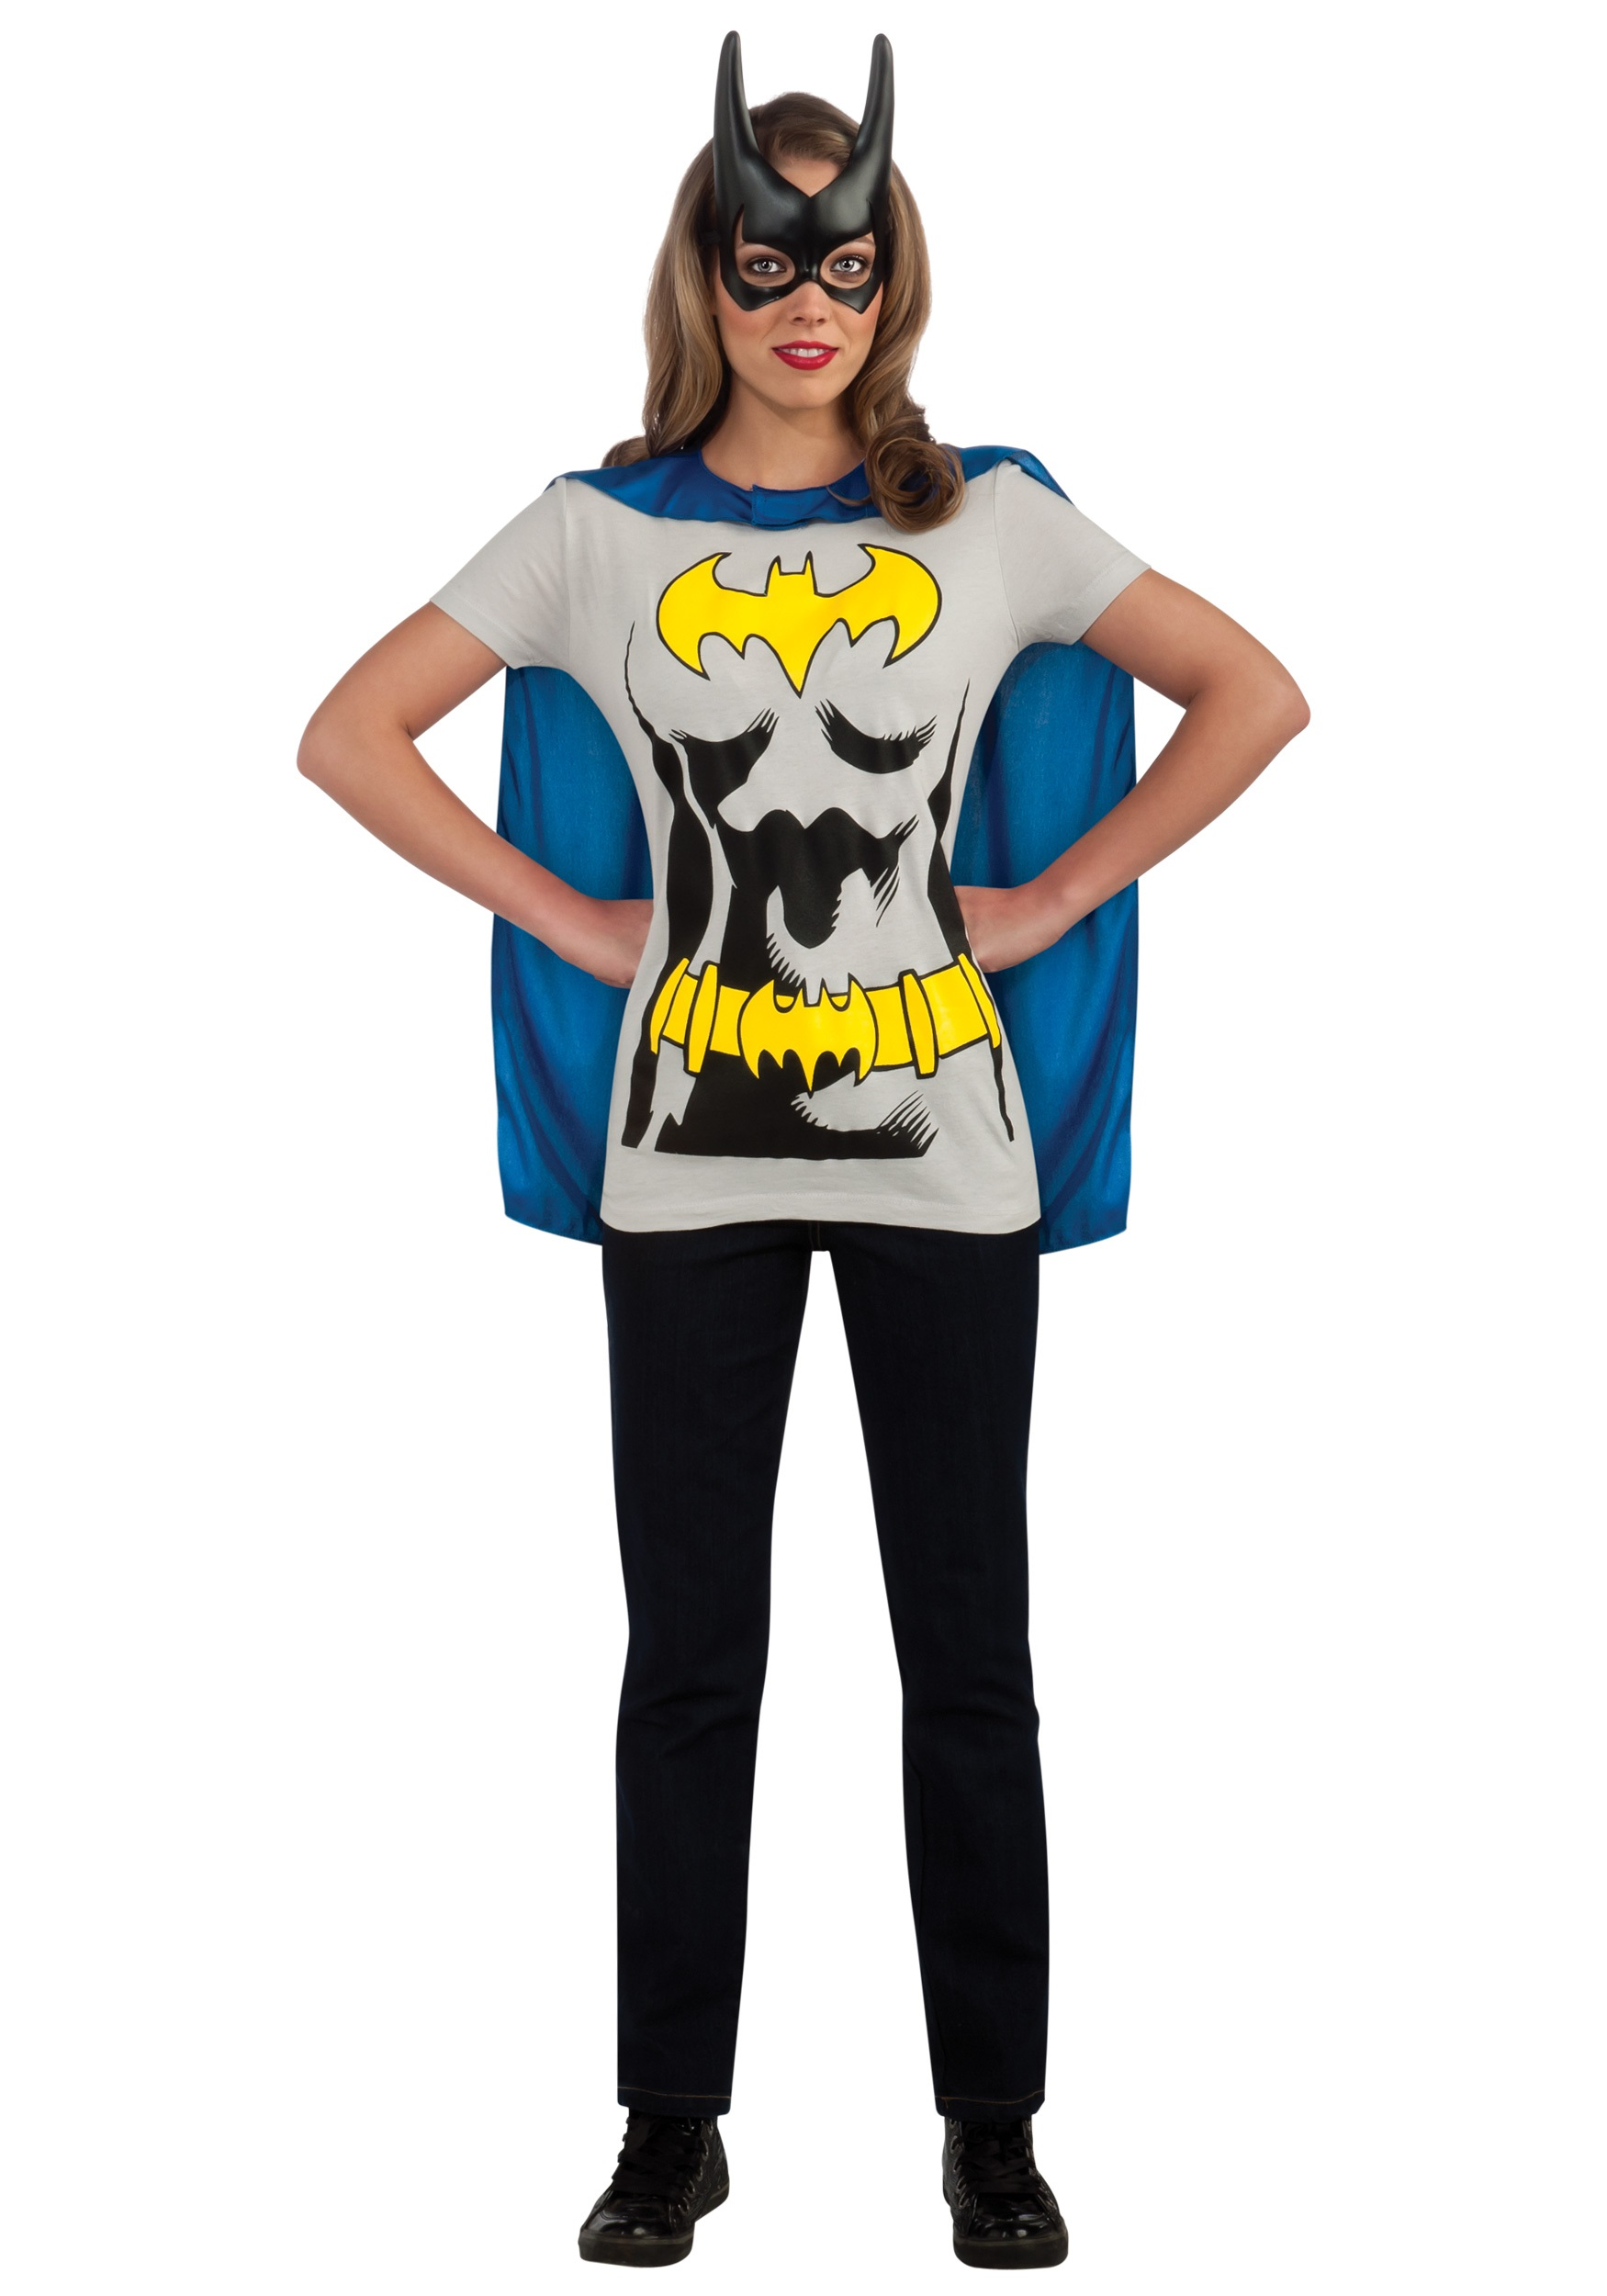 C956 Superhero T Shirt Women Costume Wonder Woman Robin